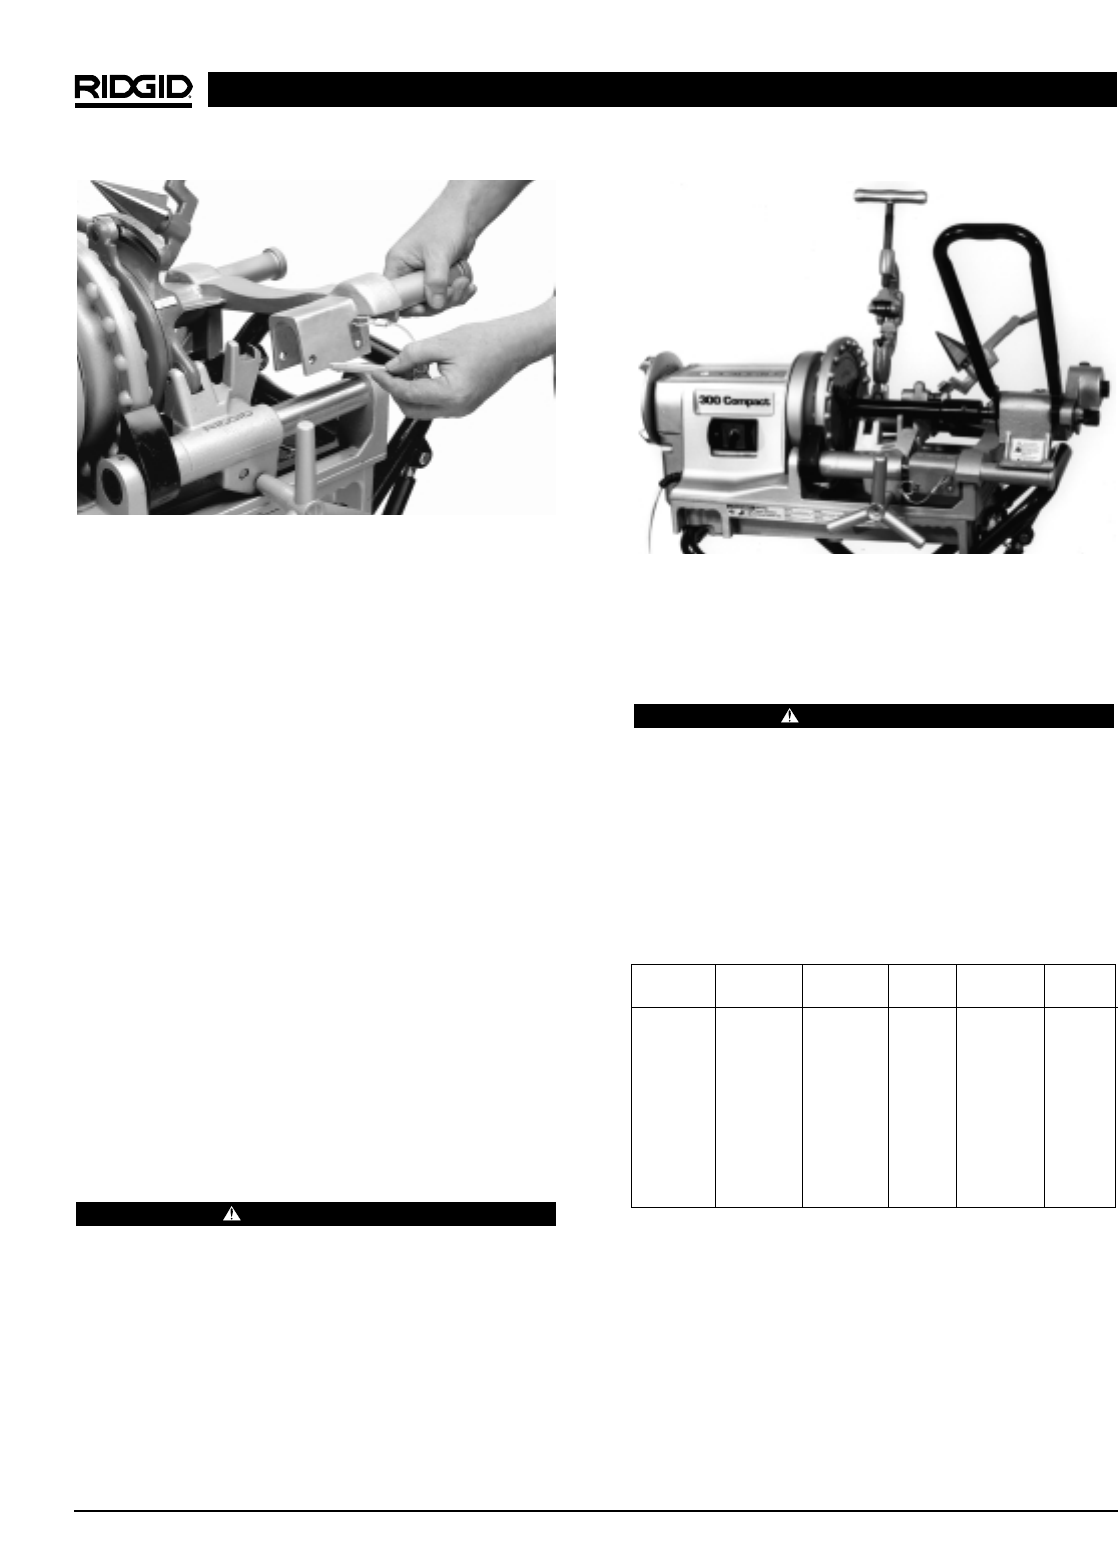 Page 60 of RIDGID Sewing Machine 300 User Guide